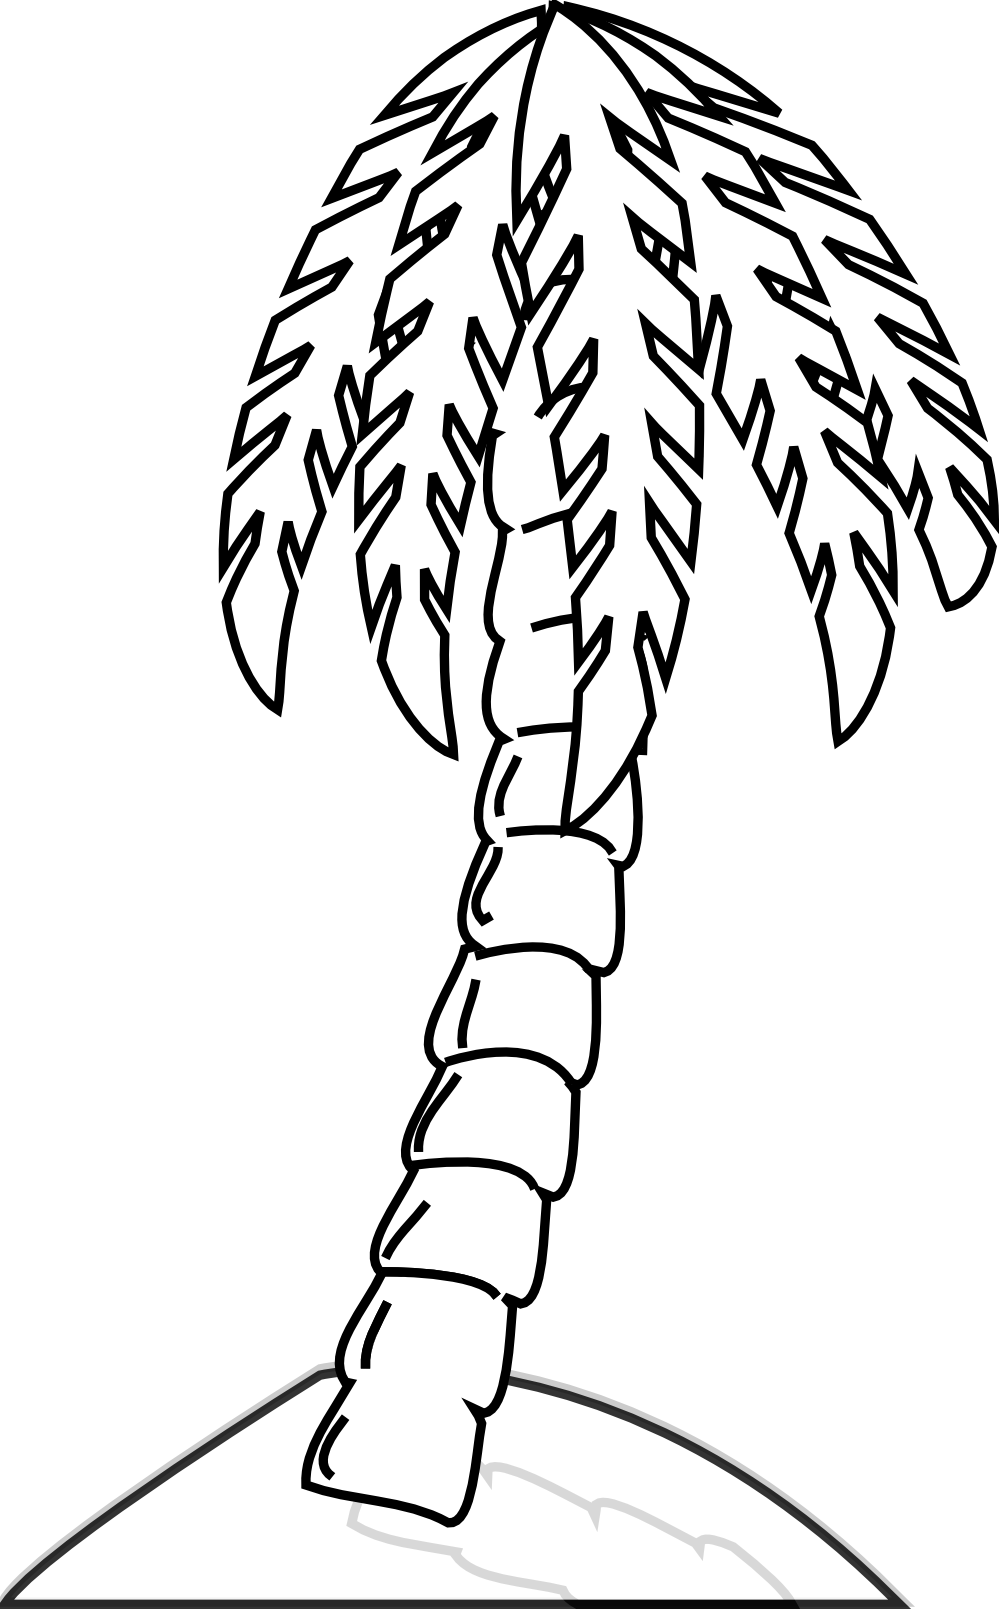 Fancy tree clipart png royalty free download Narra tree clipart black and white png royalty free download